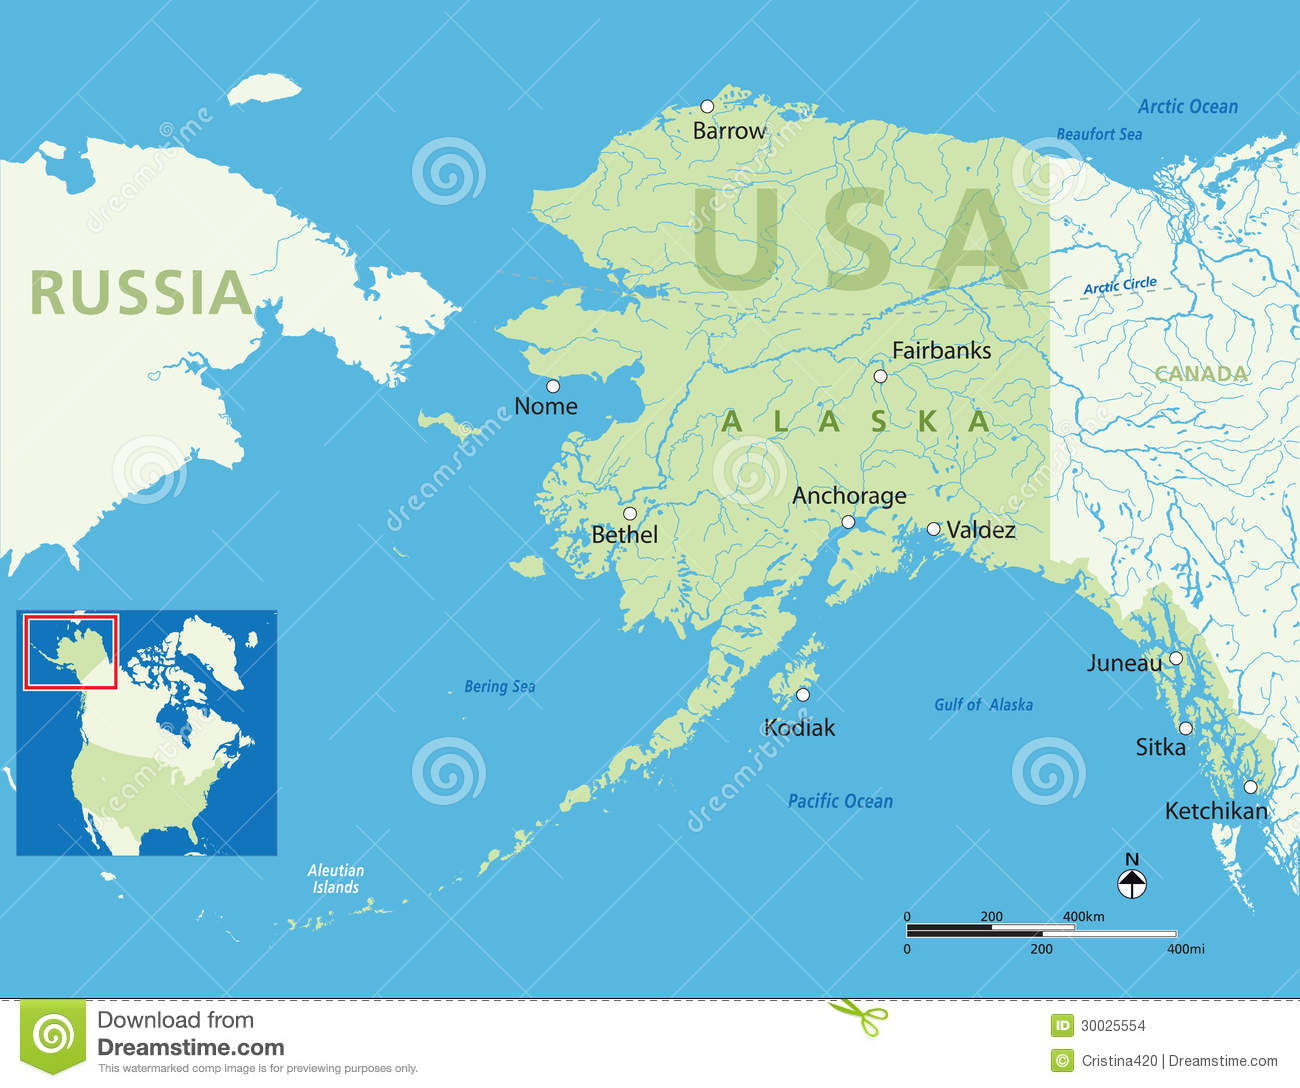 https://thumbs.dreamstime.com/z/carte-de-l-alaska-etats-unis-avec-la-petite-carte-de-site-illustration-de-vecteur-30025554.jpg